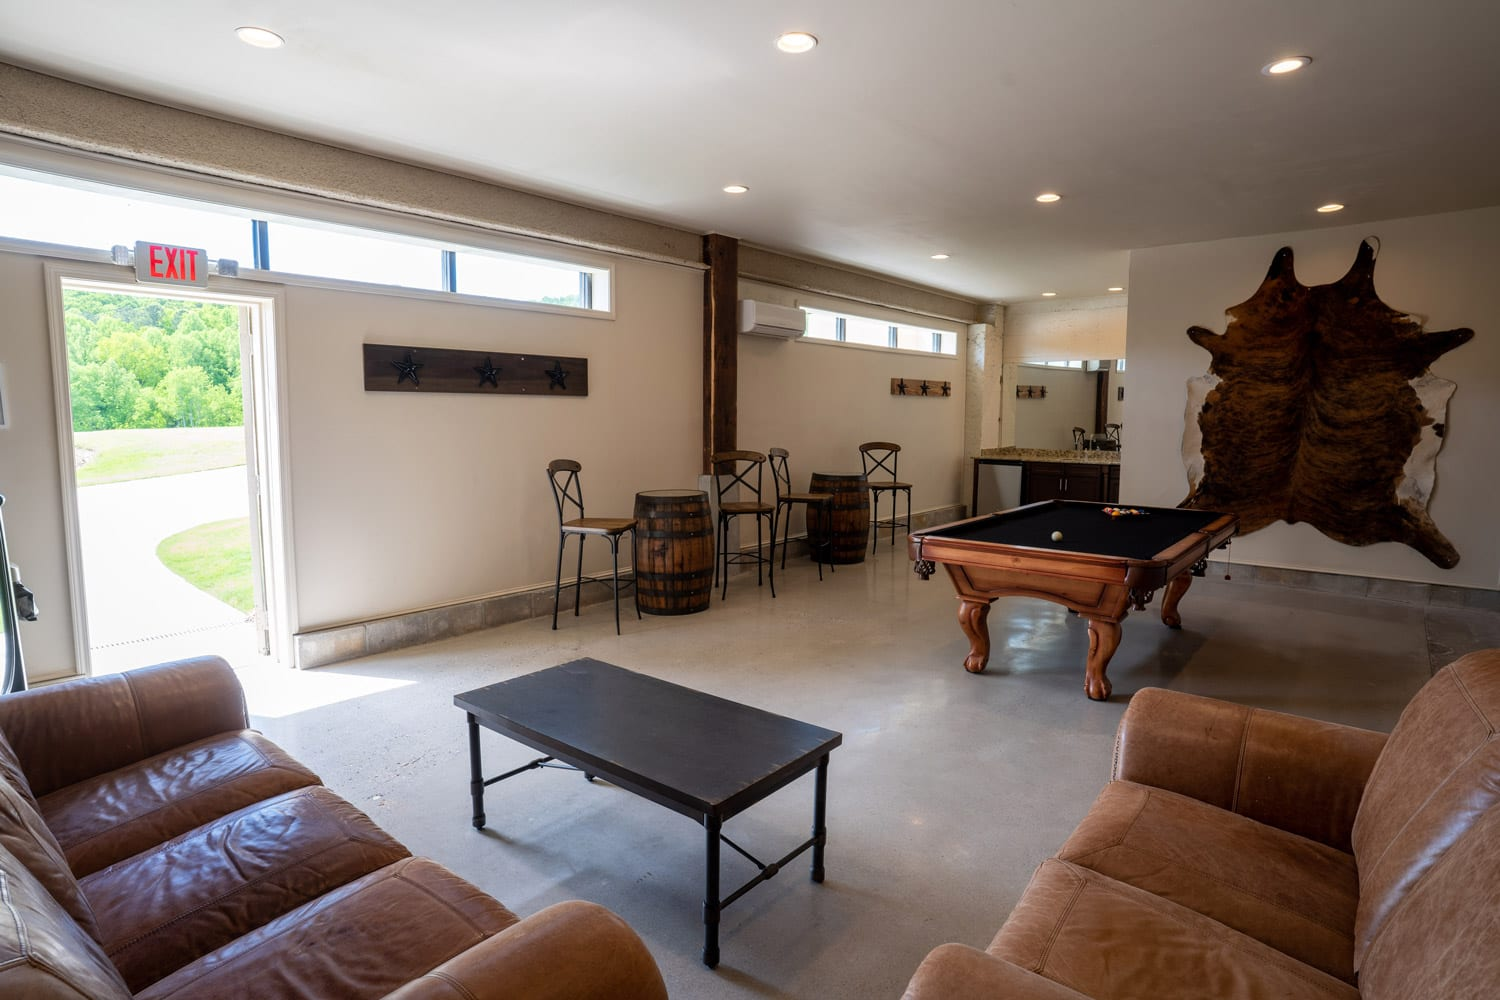 Groom's room with couches and billiards table